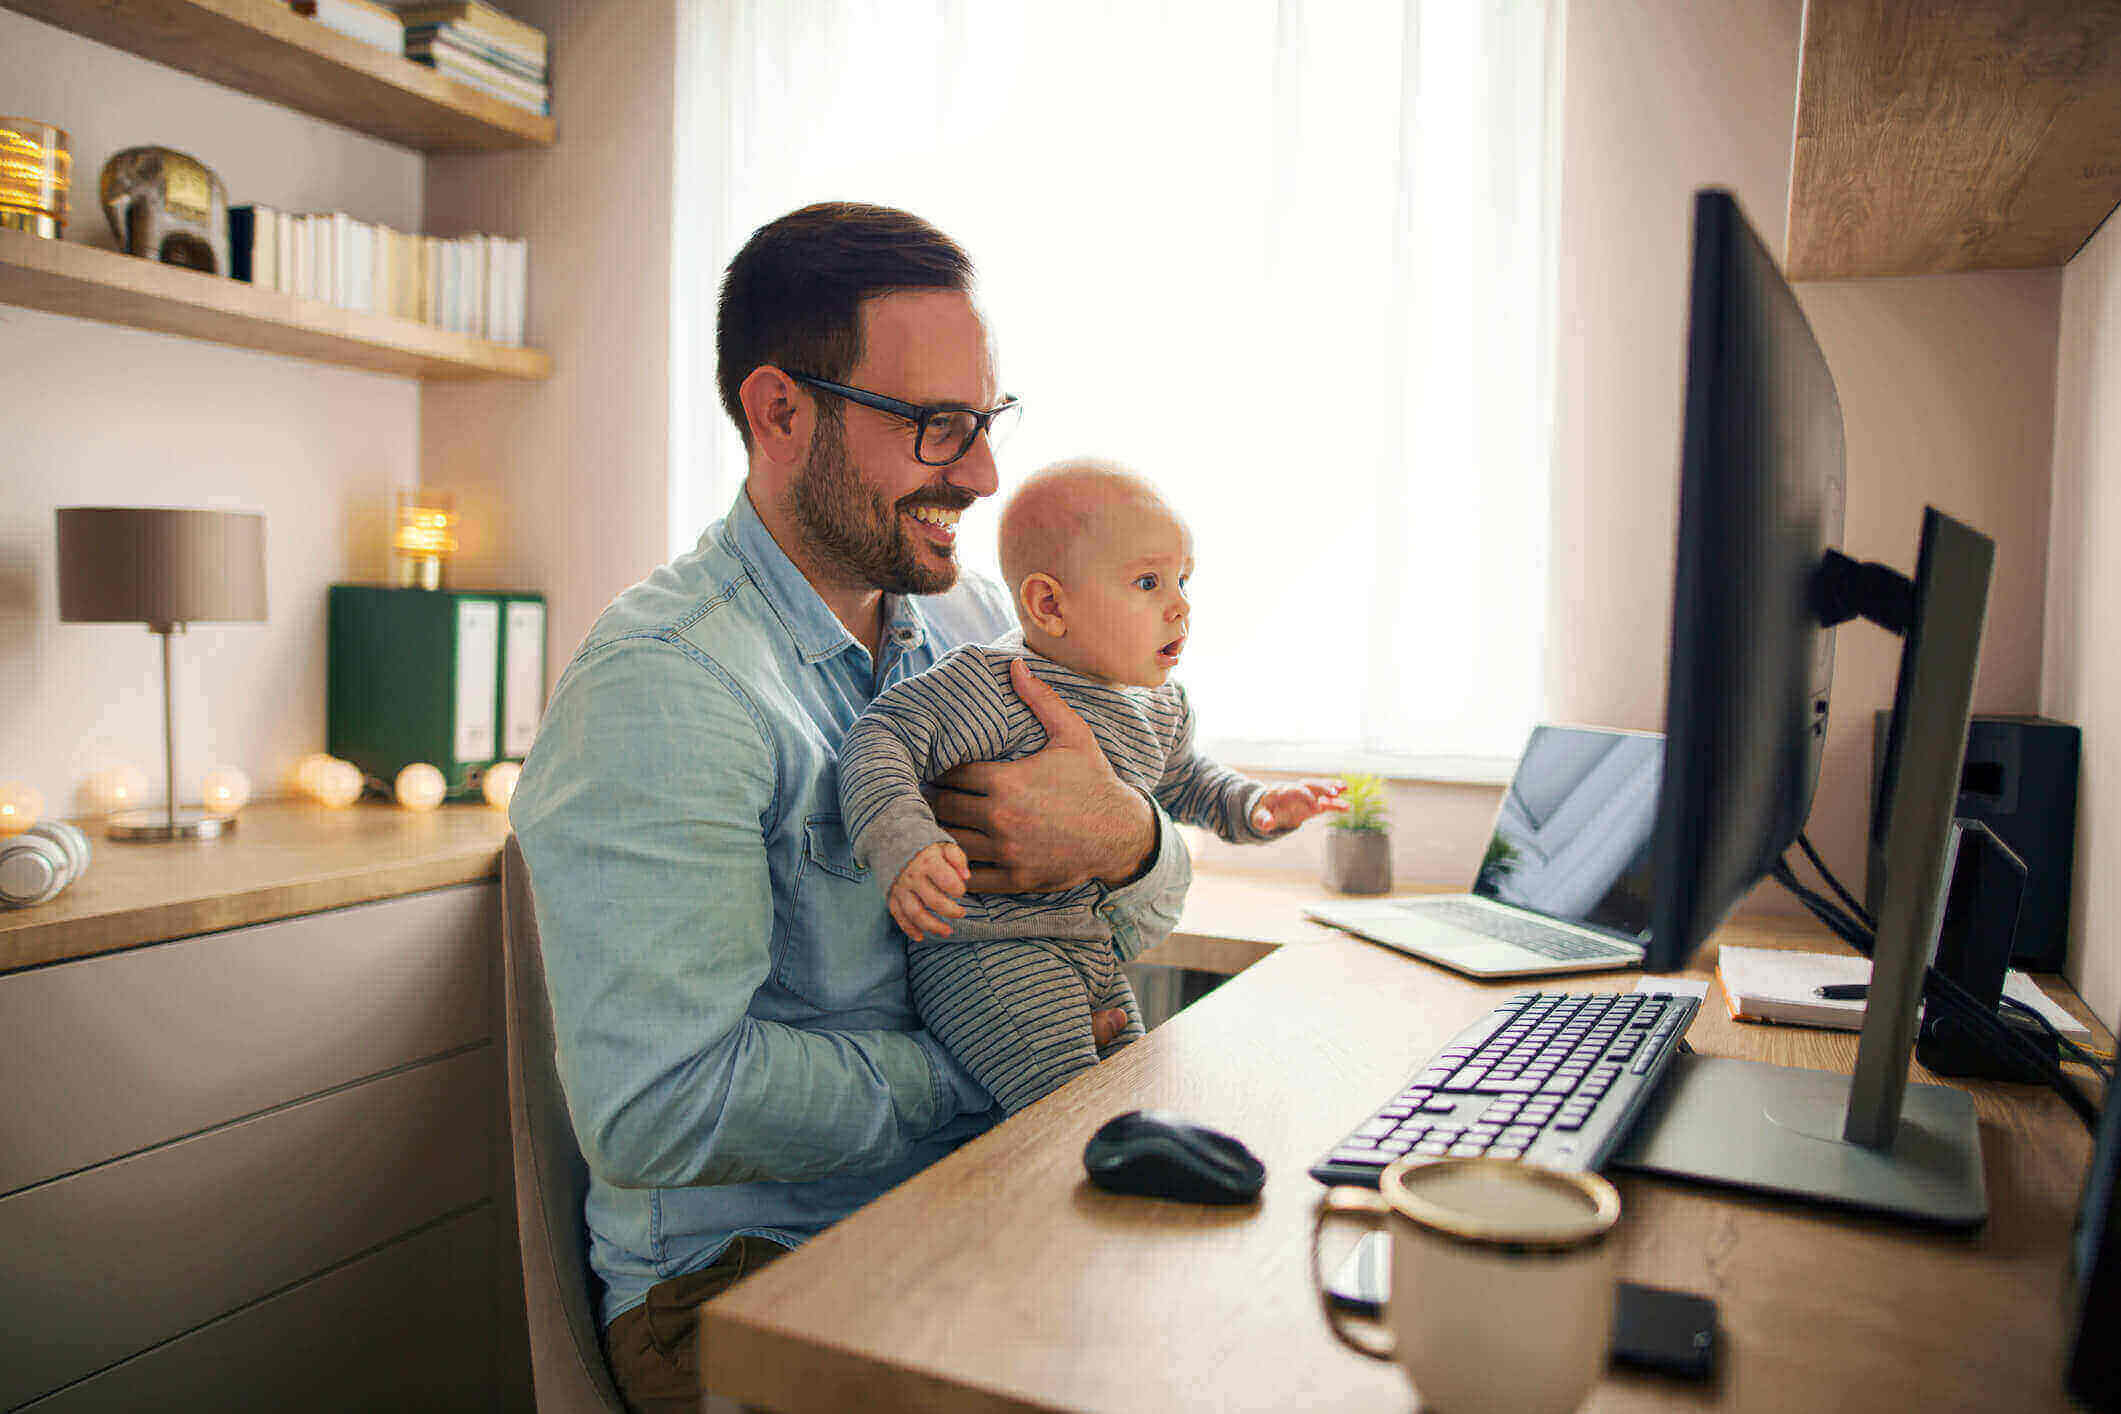 Man using home office